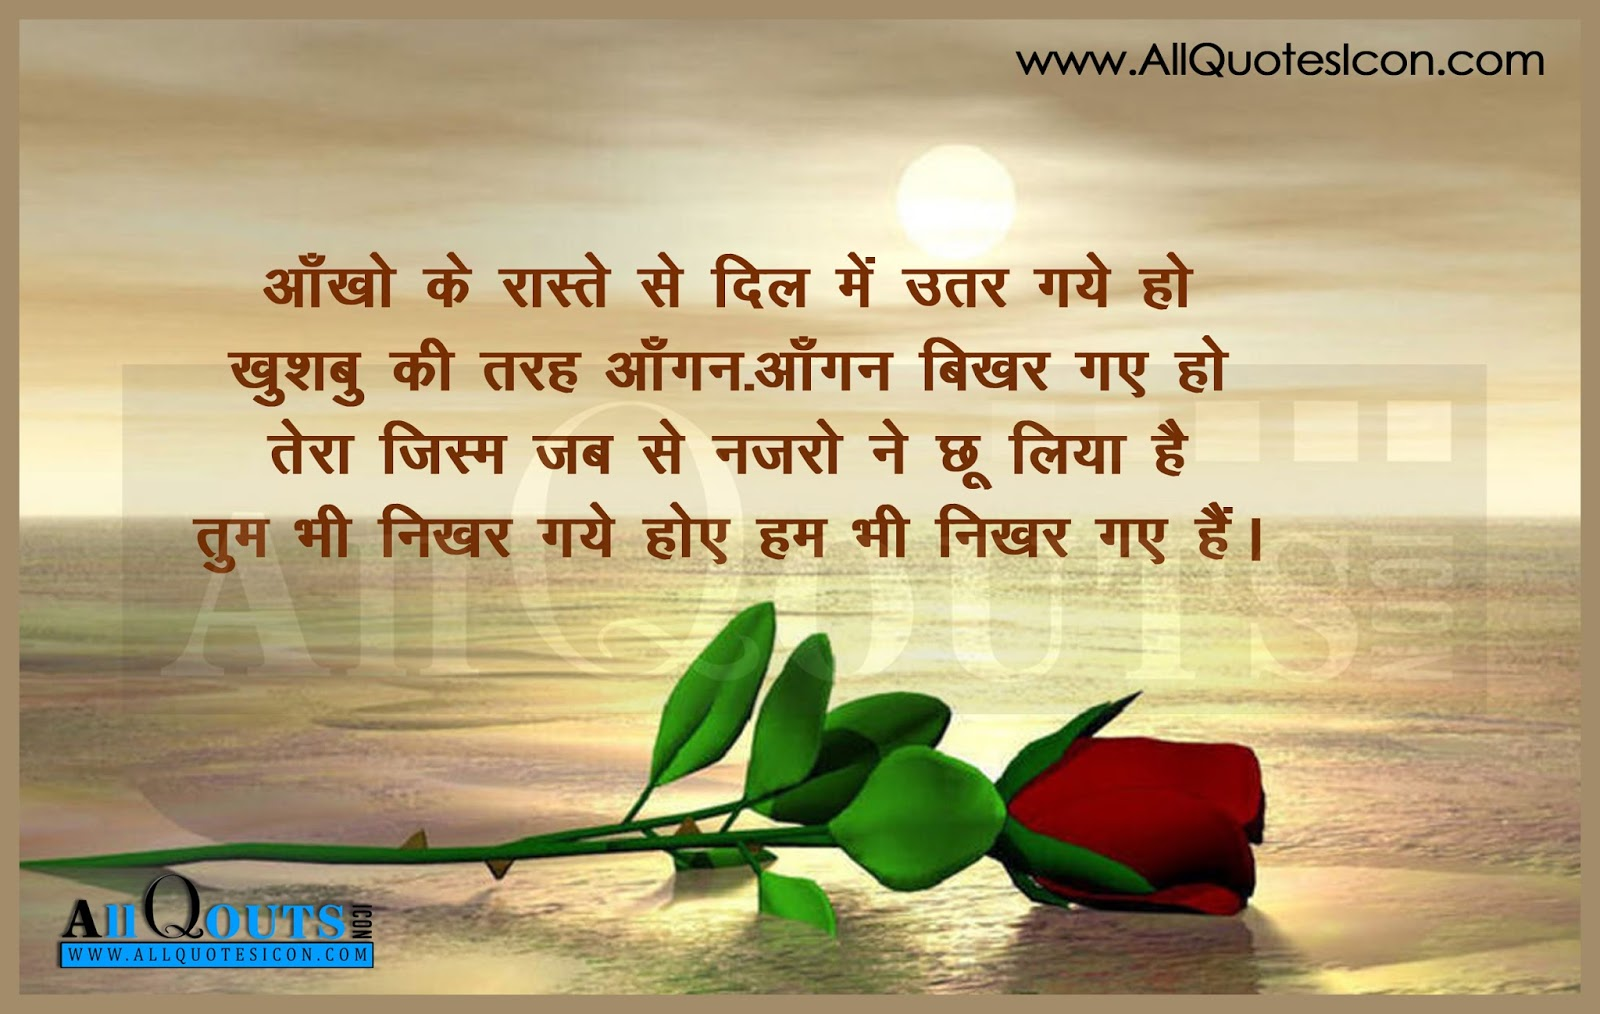 hindi love quotes and thoughts best hindi love quotes top hindi love ...